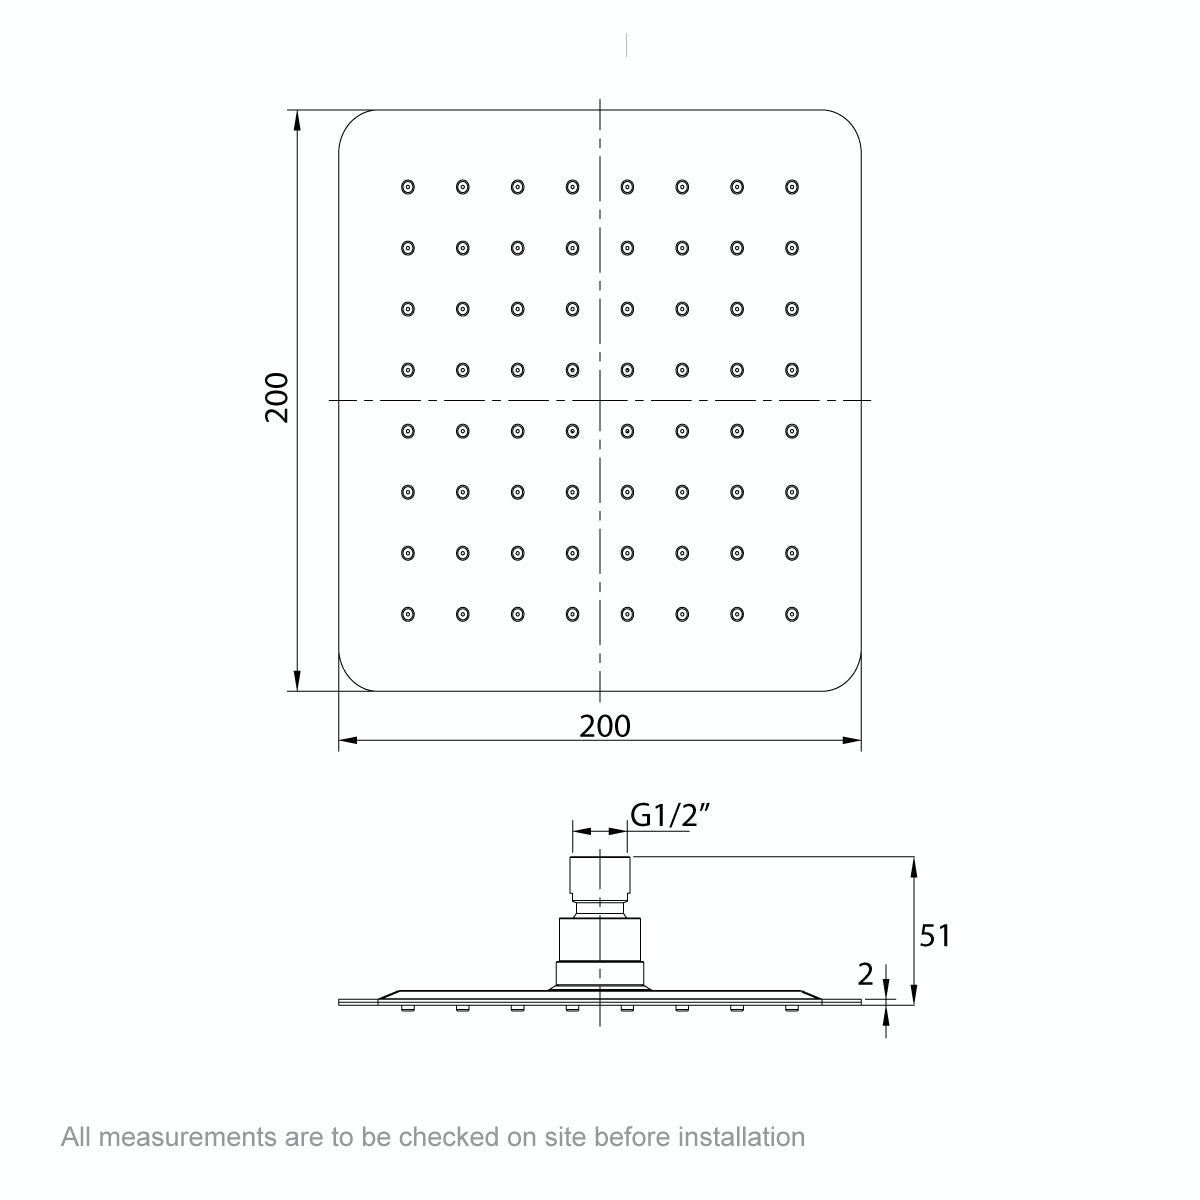 Dimensions for Mode Renzo square slim stainless steel shower head 200mm